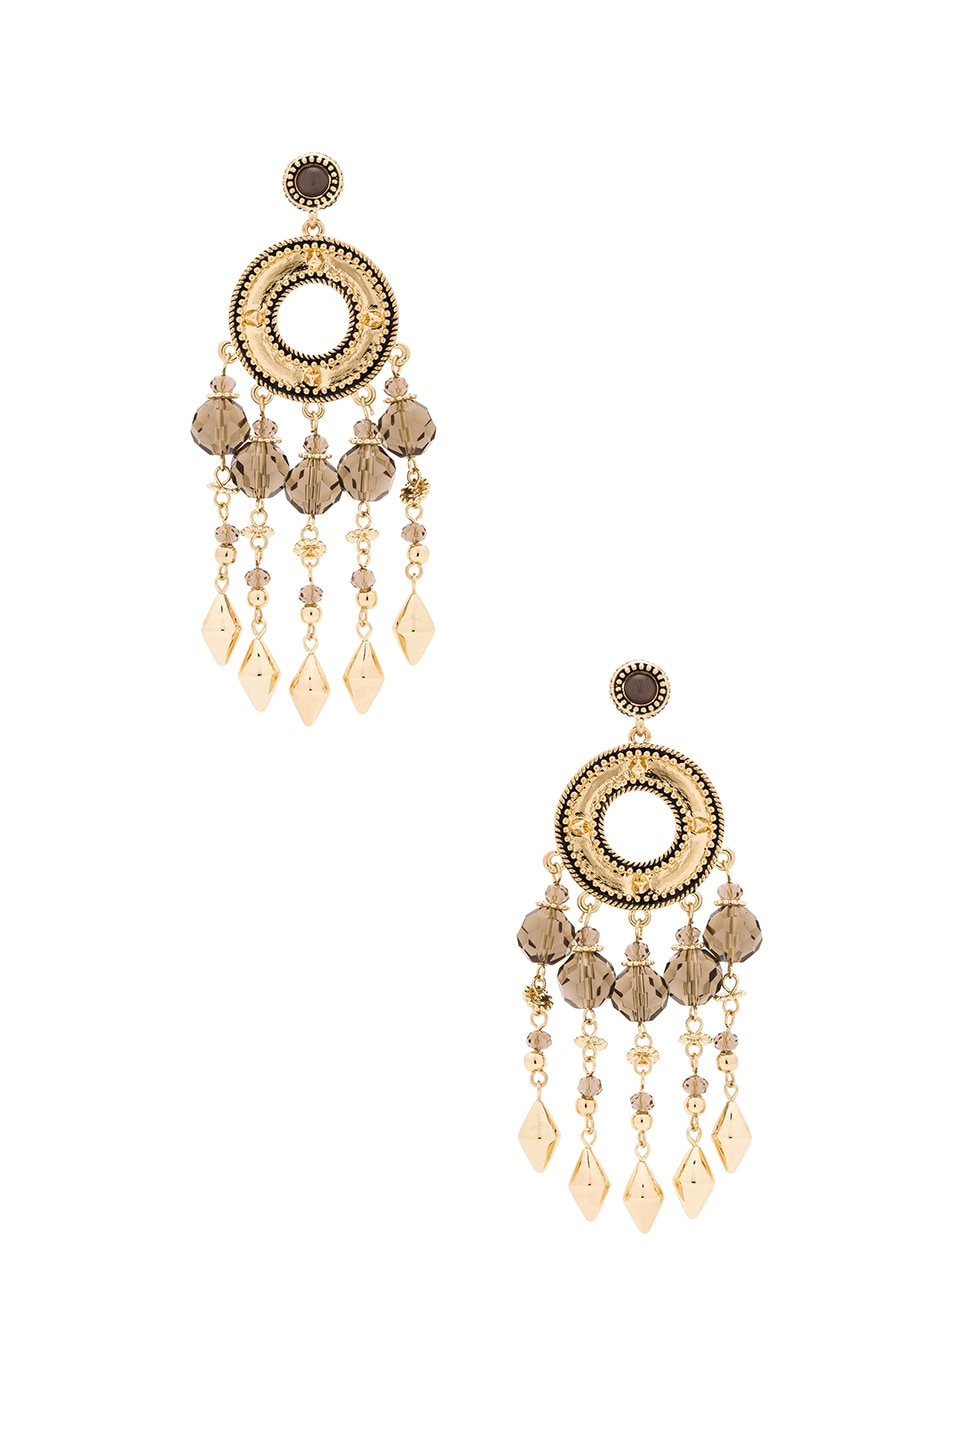 House of Harlow 1960 House of Harlow Cuzco Chandelier Earring in Gold